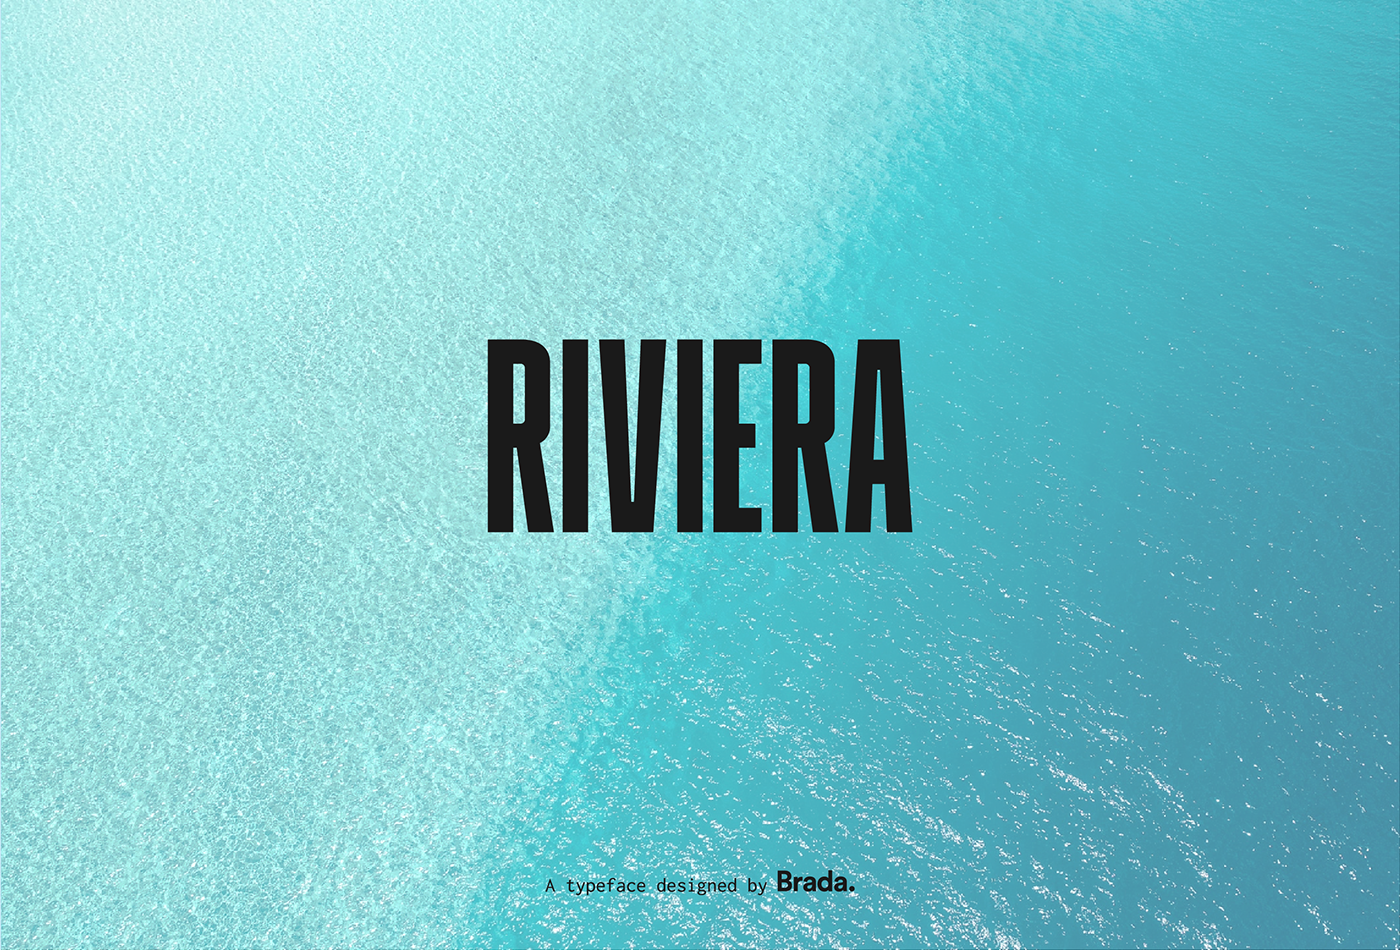 Riviera Typeface on Behance